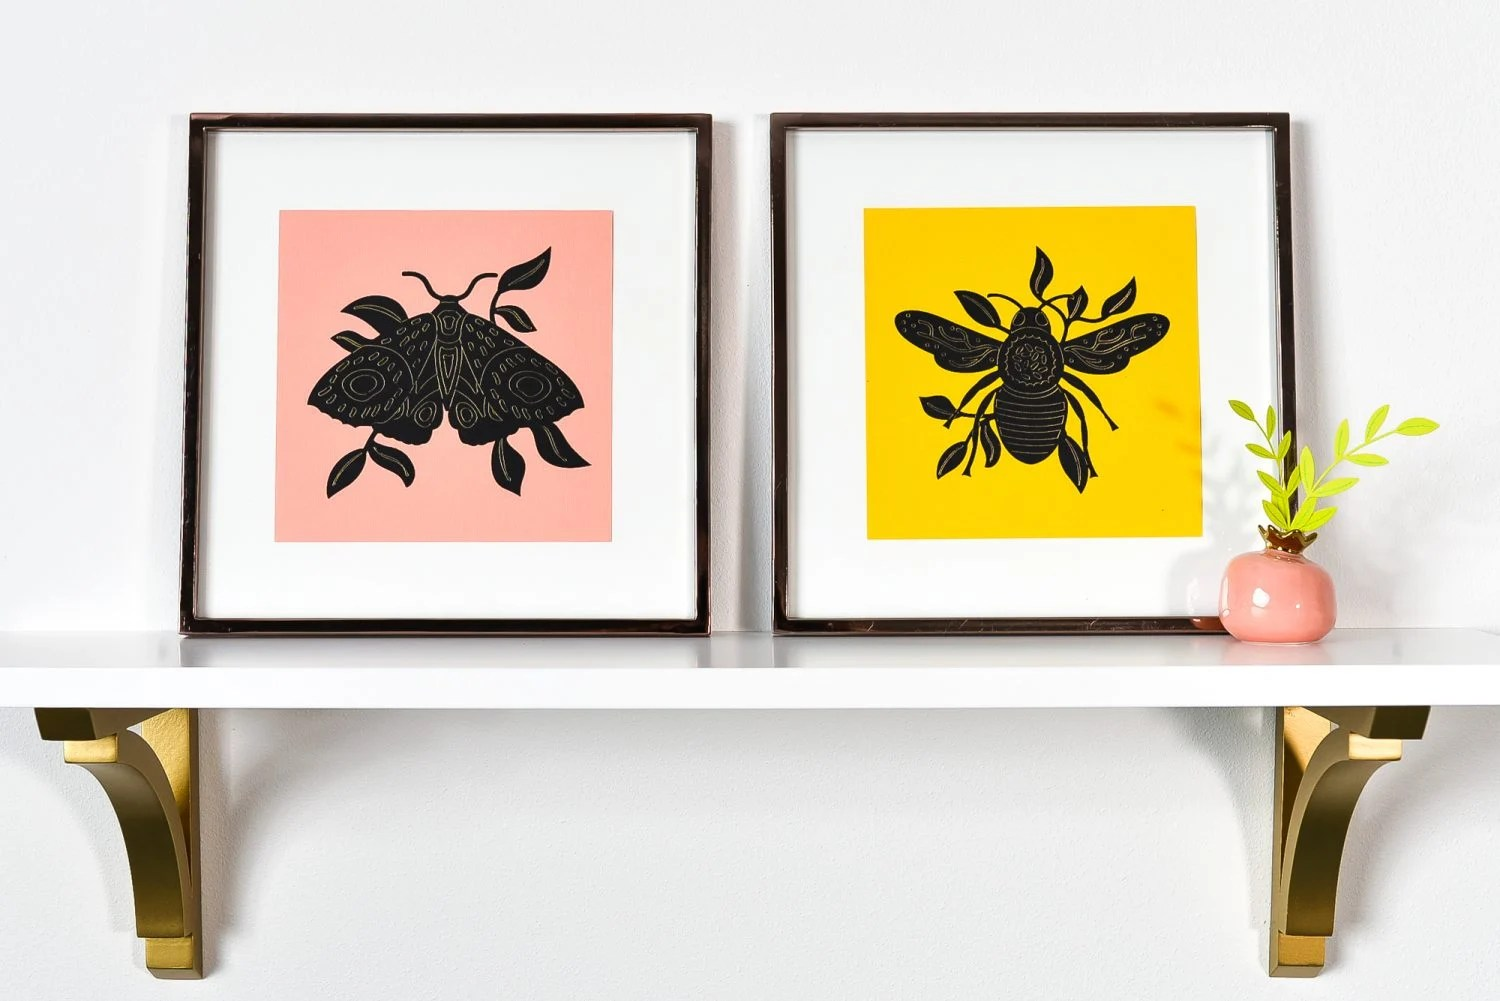 Moth and bee foiled artwork on a shelf with small bud vase and foiled plant.